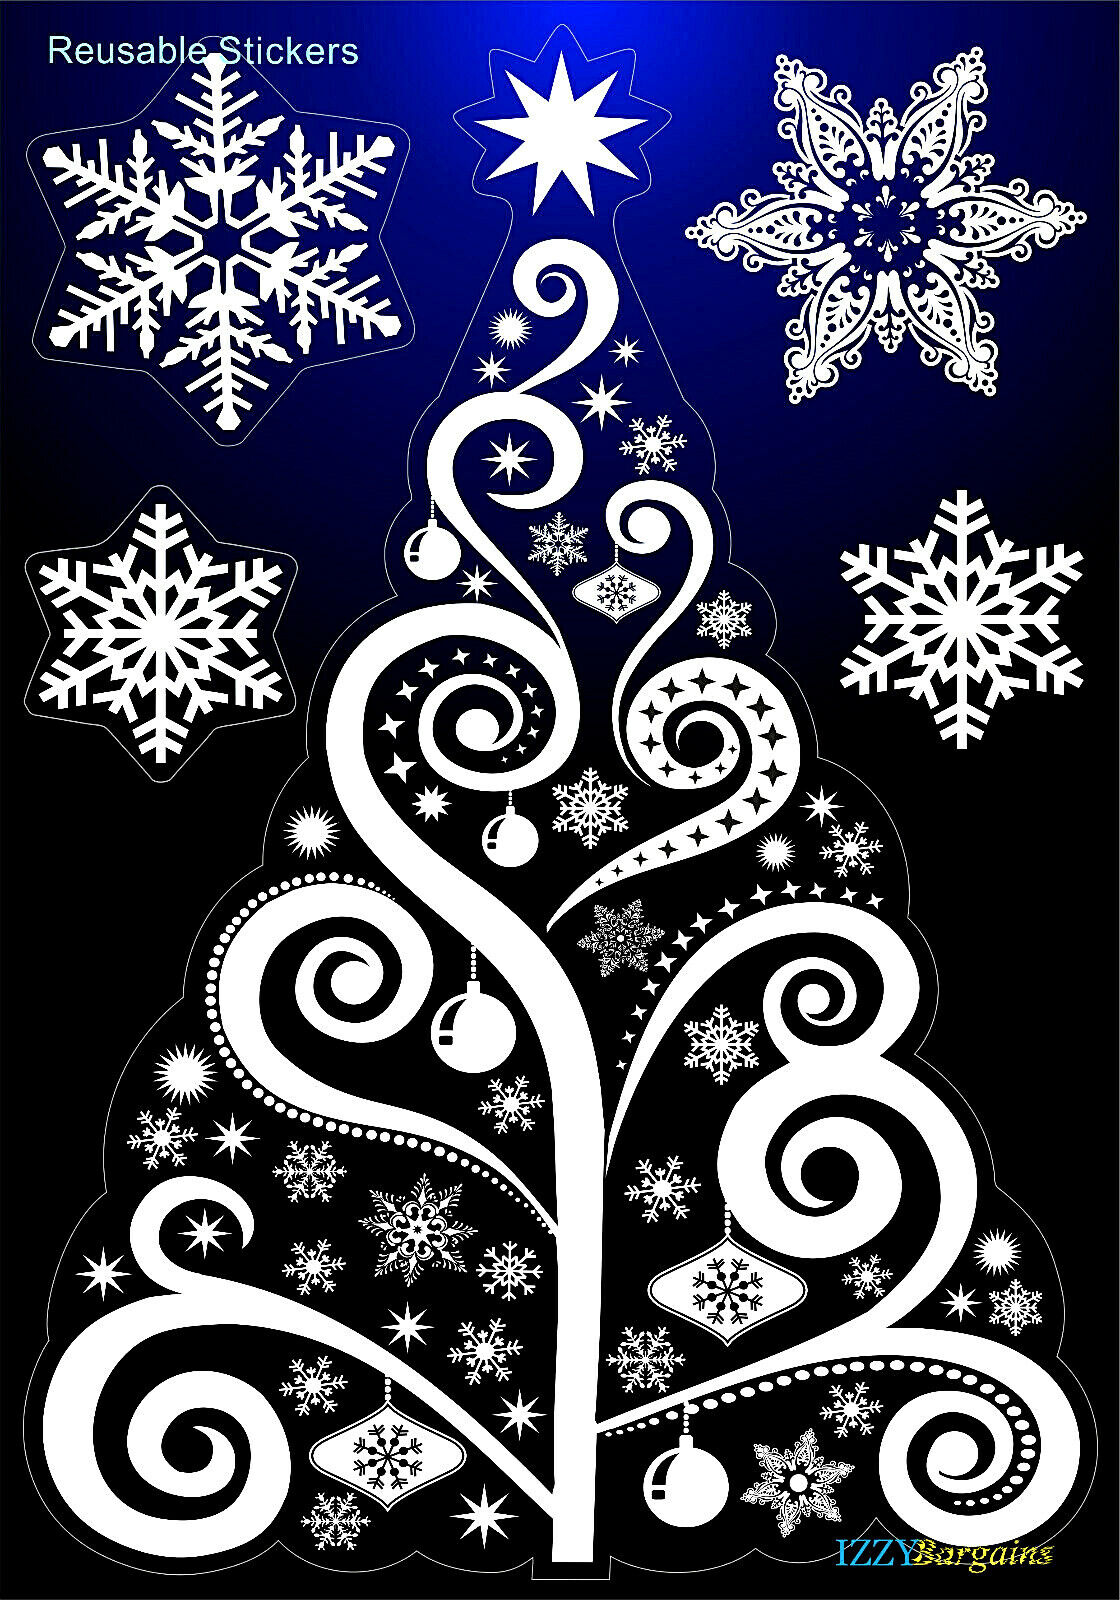 Home Decoration - CHRISTMAS TREE SNOWFLAKES STICKERS DECAL HOME WINDOW DECORATIONS GIFT REUSABLE +